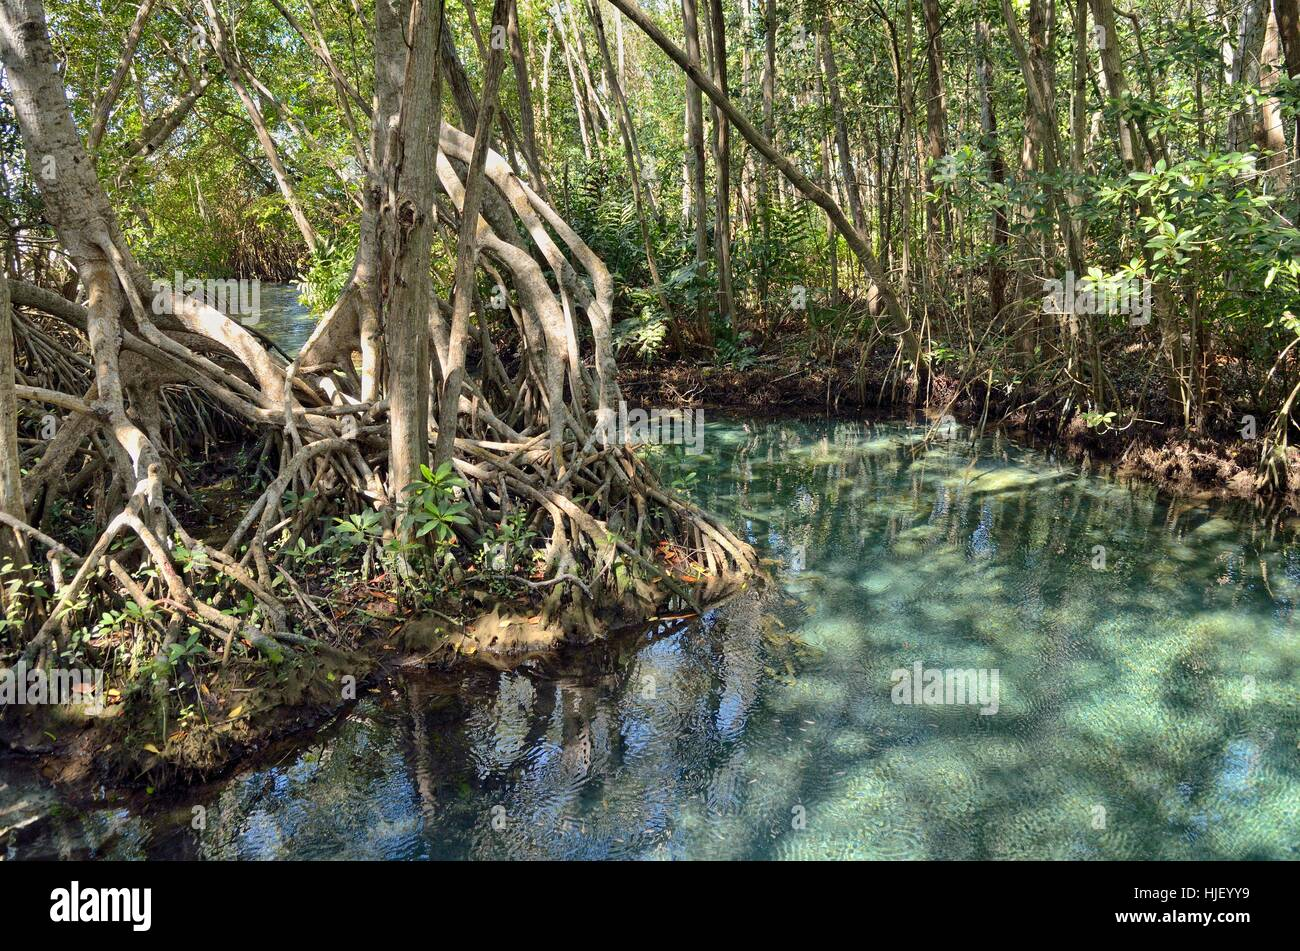 Freshwater source in mangrove forest (Rhizophora), near Celestun, Yucatan, Mexico Stock Photo